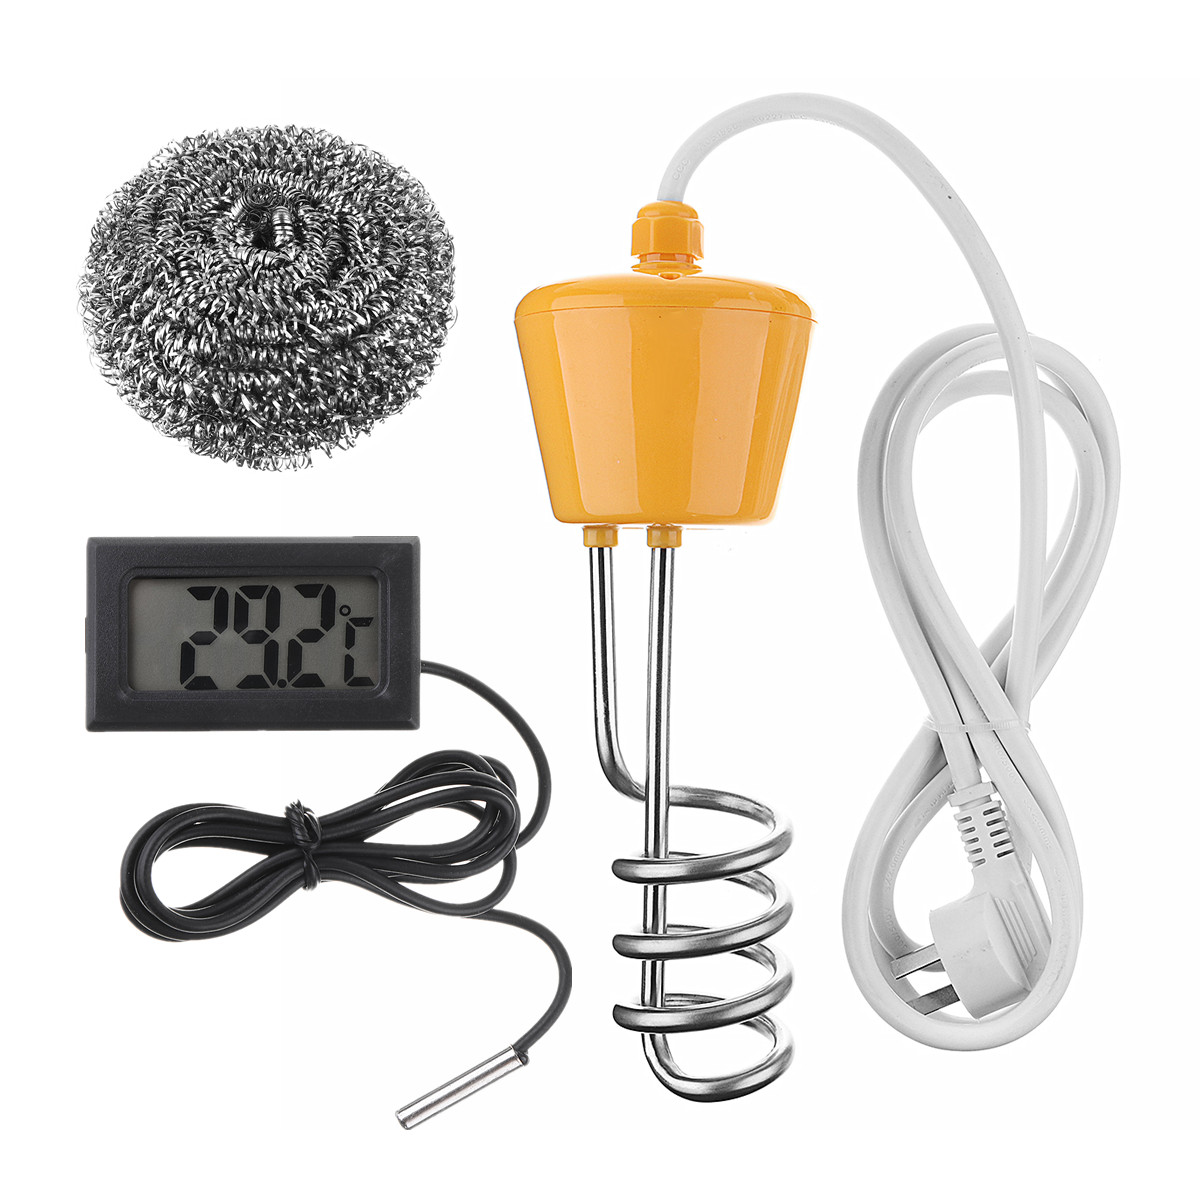 Portable 2500W Floating Electric Heater Boiler Water Heating Element 220-250V Immersion Suspension Bathroom With Thermometer